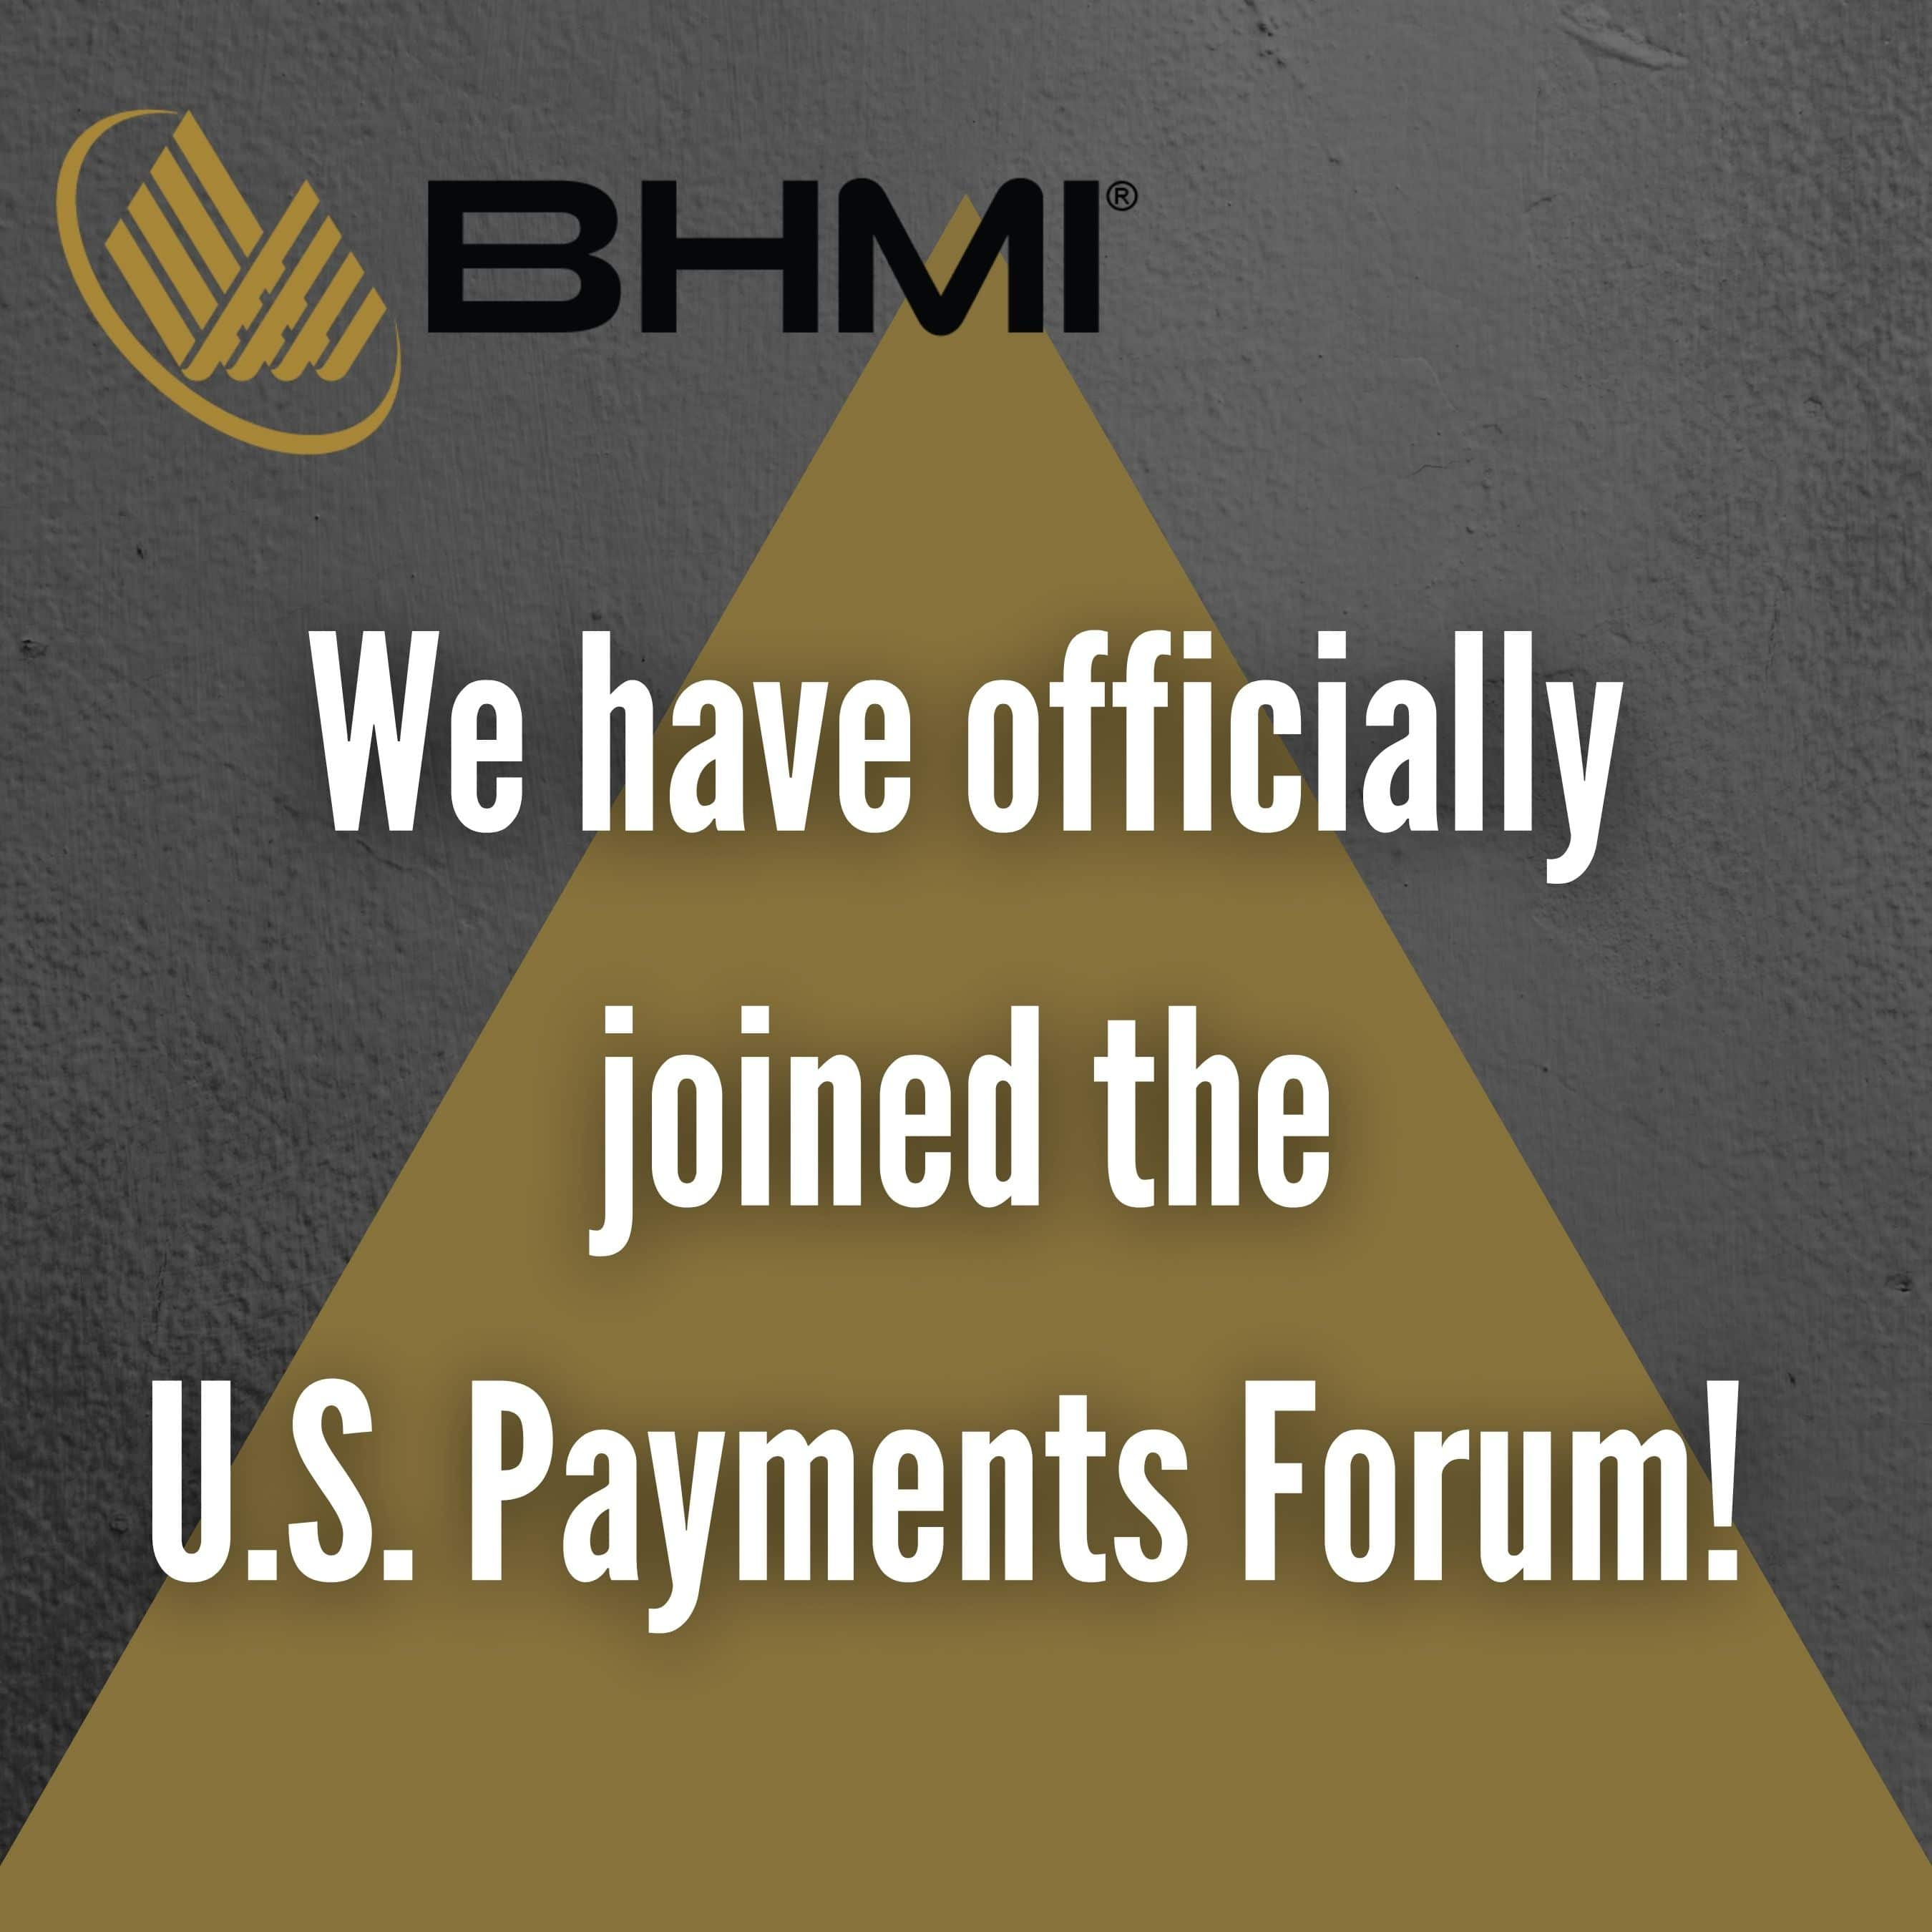 We have Officially Joined the U.S. Payments Forum